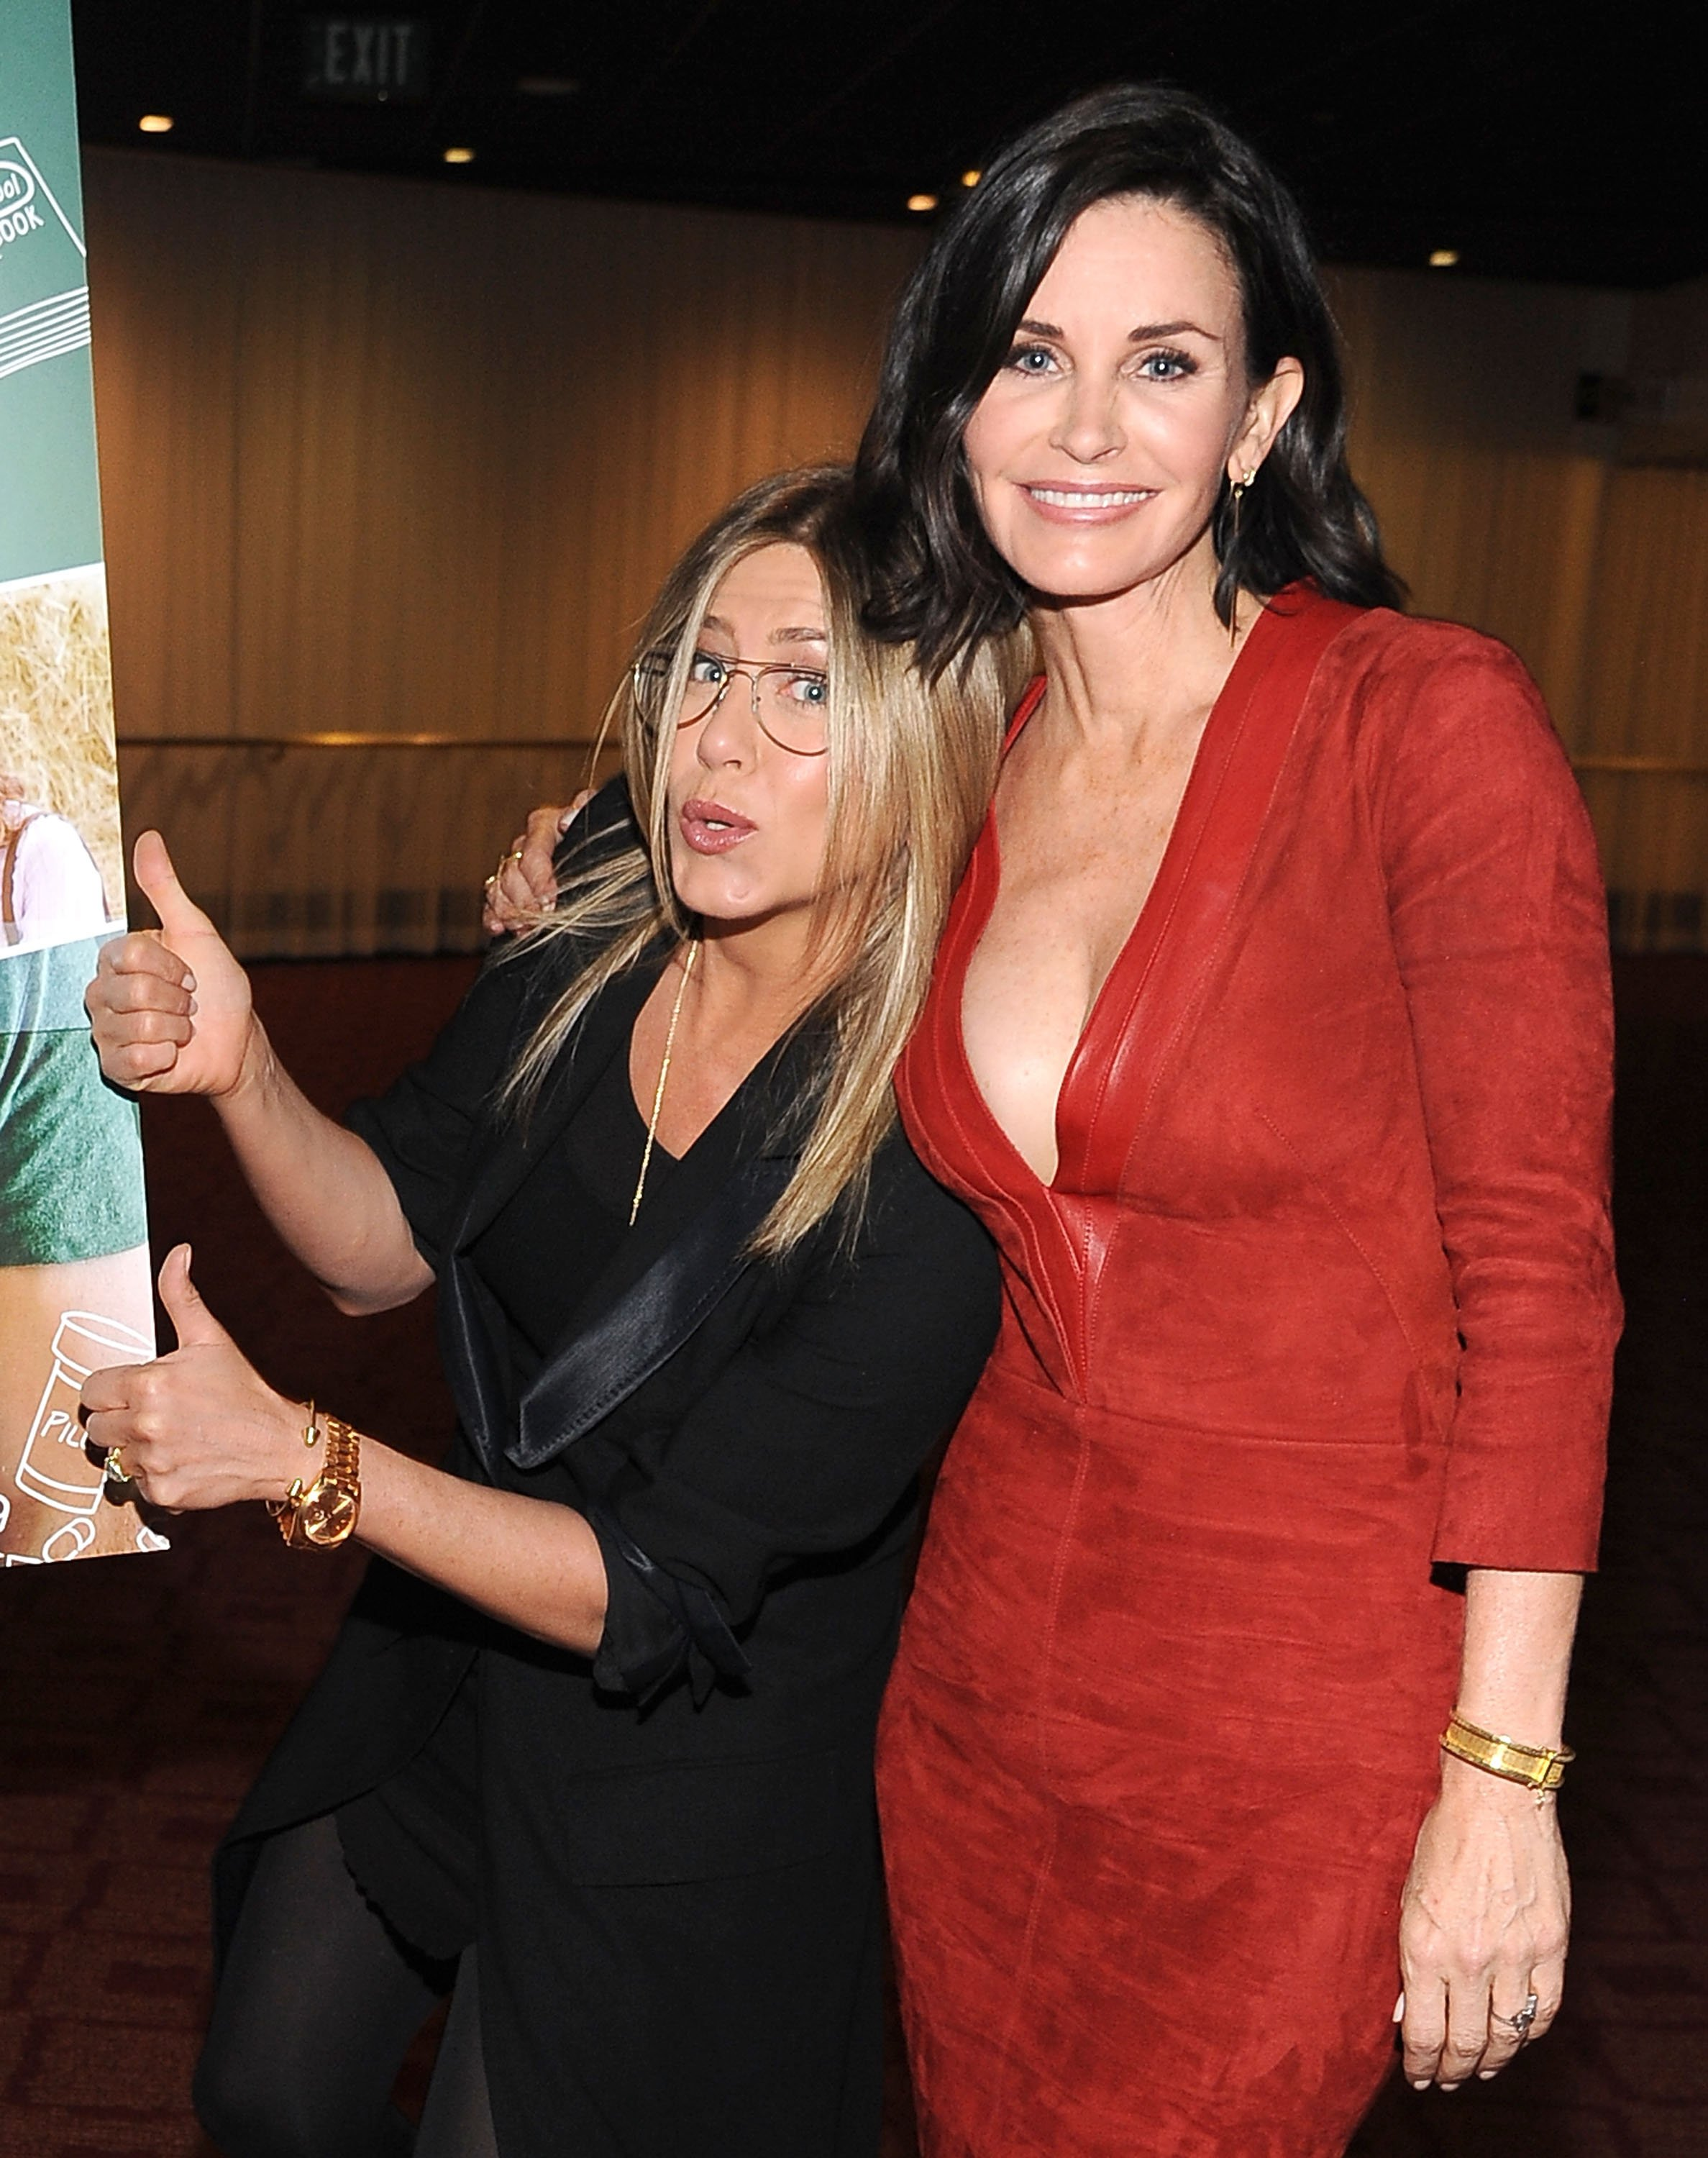 Jennifer Aniston posing with good friend Courteney Cox | Photo: Getty Images